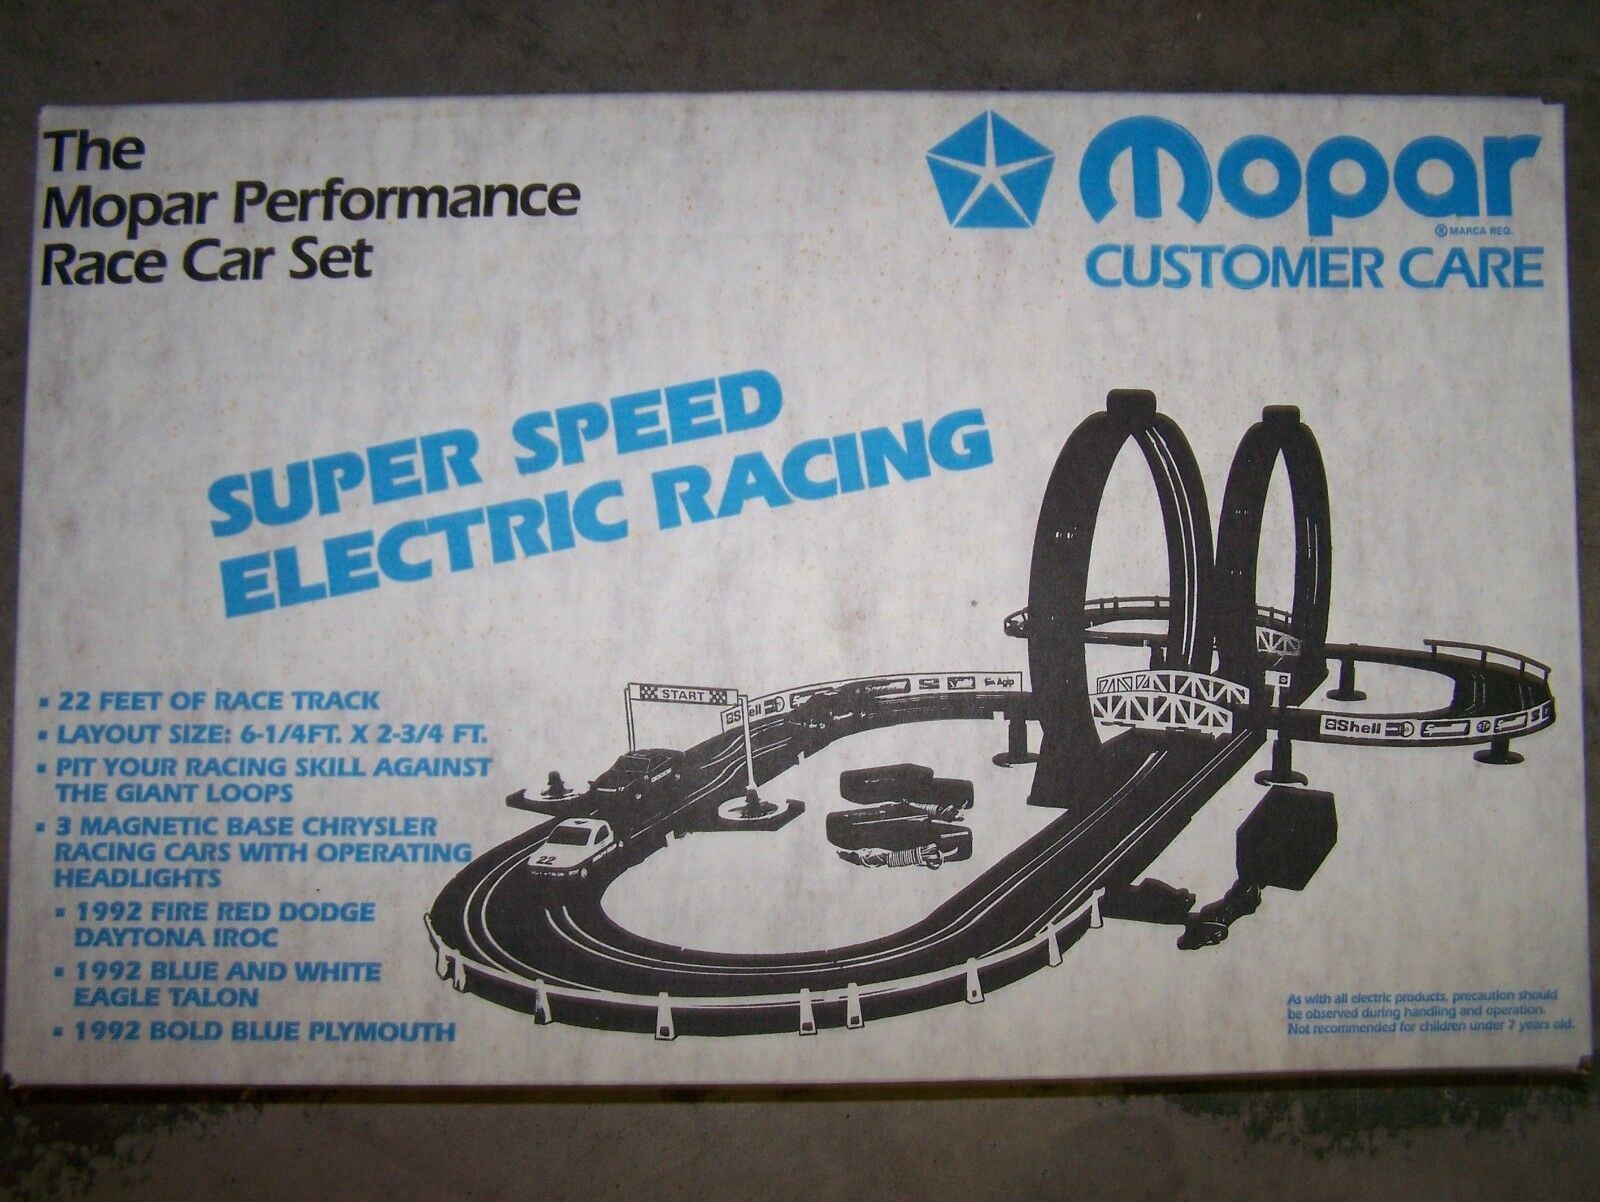 NOS MOPAR Performance Loop SHOOT SUPER SPEED Electric Racing Set Circa 1992